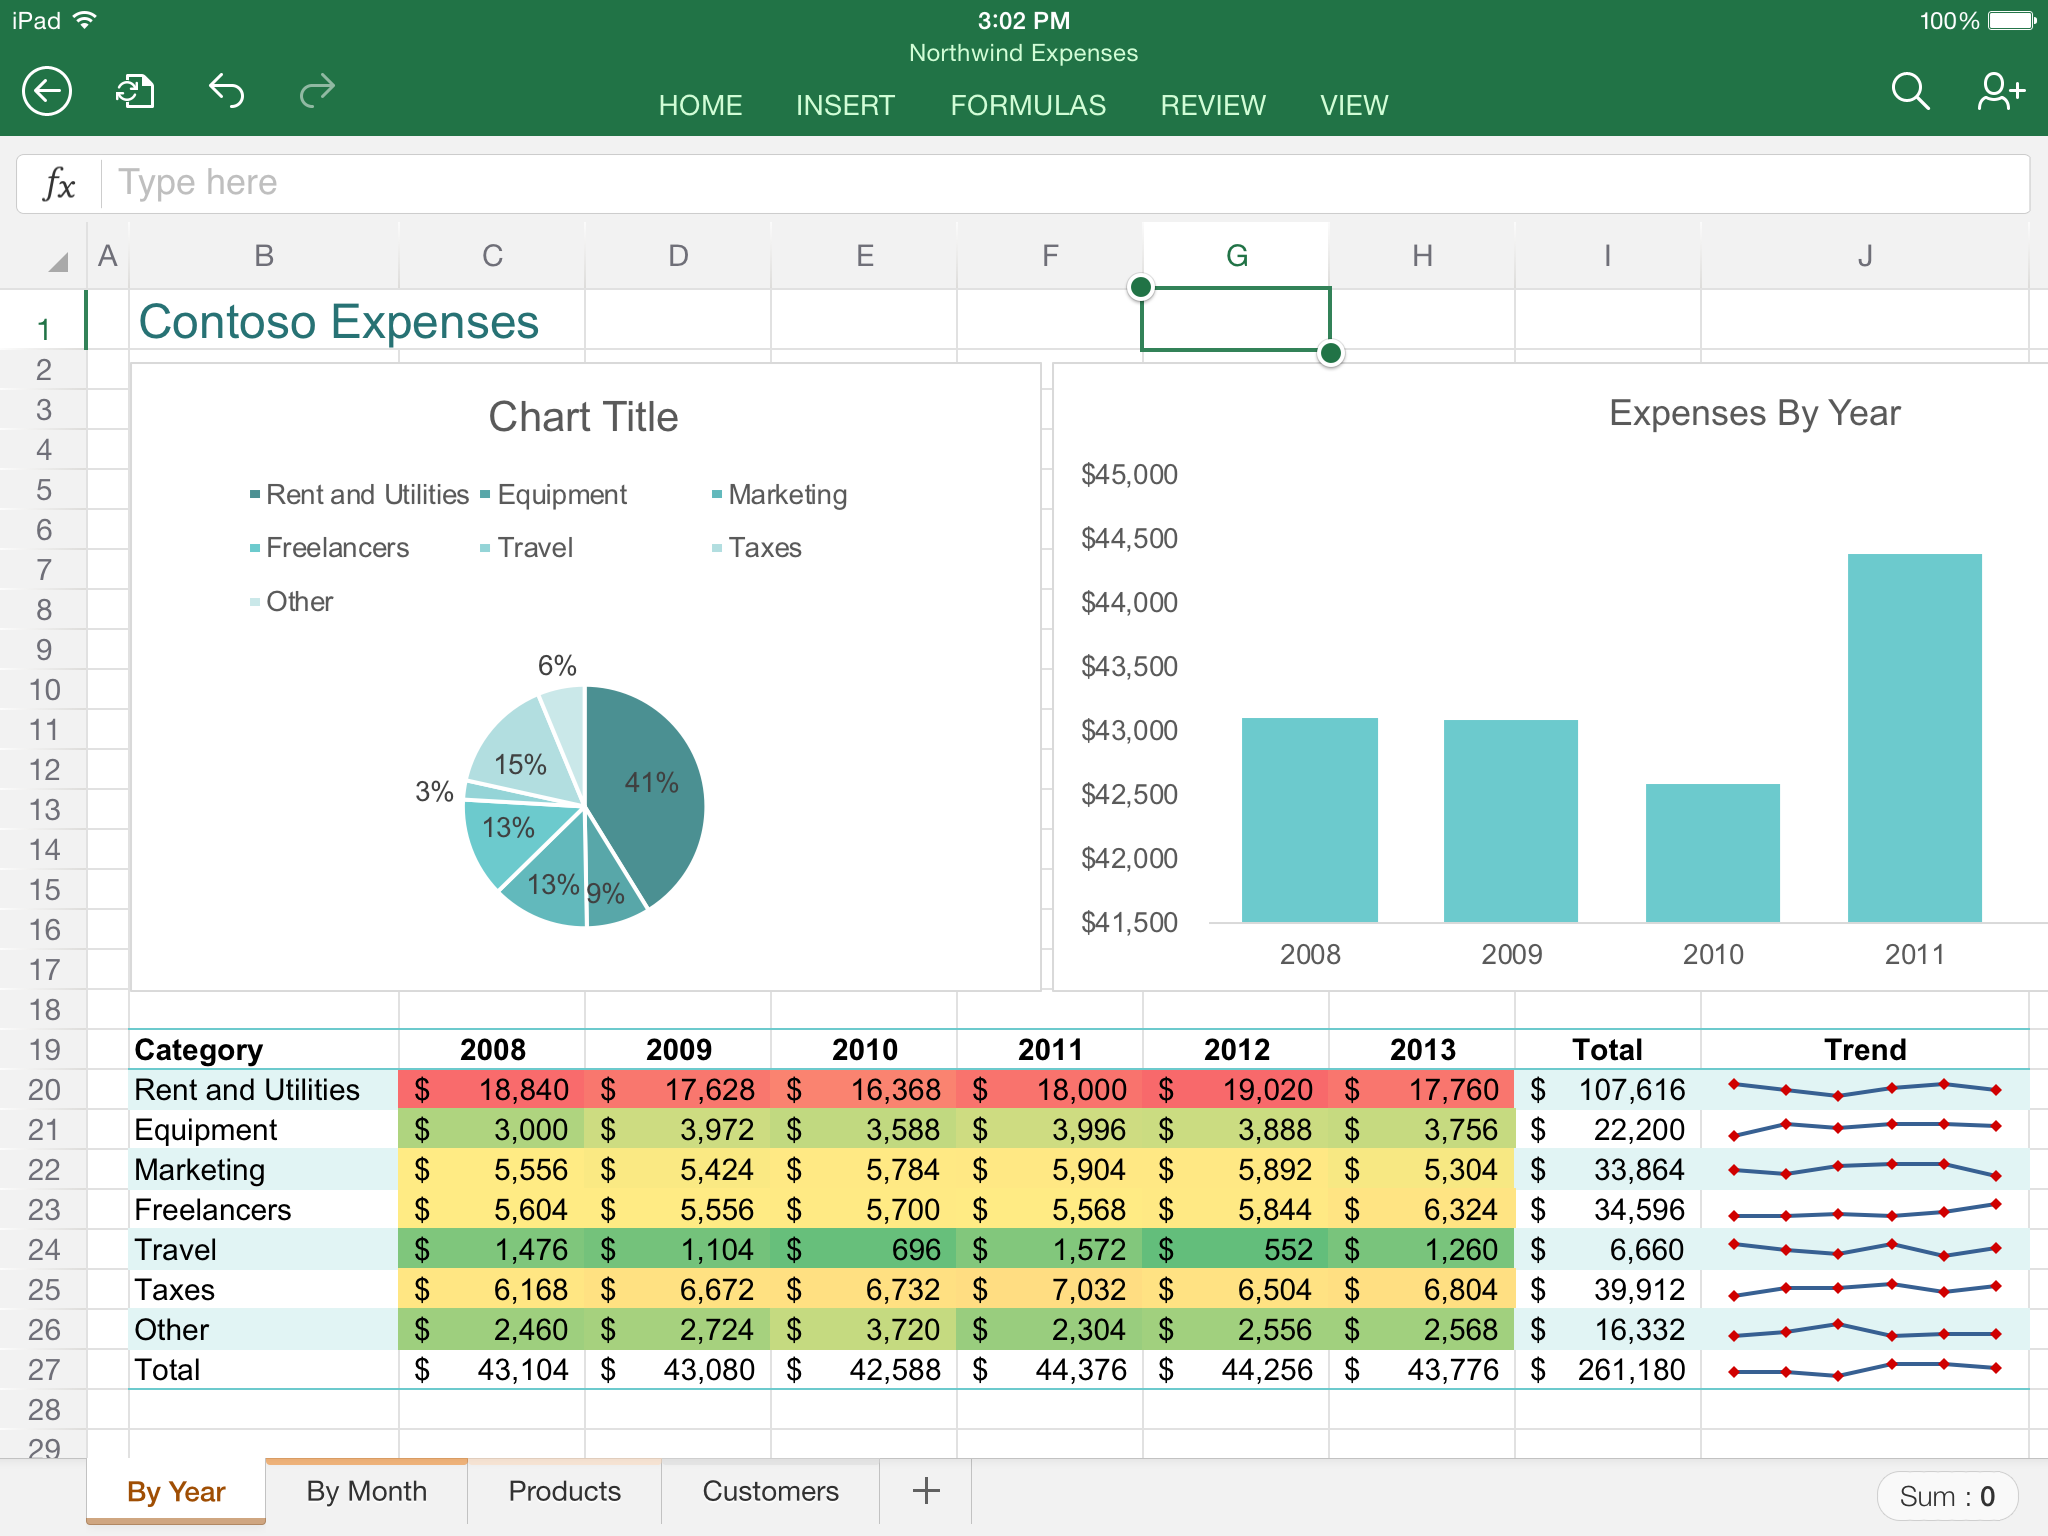 Ediblewildsus  Unique App Highlight Excel  Mobile Digital Now With Magnificent Excel In Action With Endearing What Is An If Statement In Excel Also List Of Zip Codes By State Excel In Addition Sample Excel Invoice And Linear Regression Function Excel As Well As Free Excel Invoice Template Download Additionally Log Graph In Excel From Youstonybrookedu With Ediblewildsus  Magnificent App Highlight Excel  Mobile Digital Now With Endearing Excel In Action And Unique What Is An If Statement In Excel Also List Of Zip Codes By State Excel In Addition Sample Excel Invoice From Youstonybrookedu